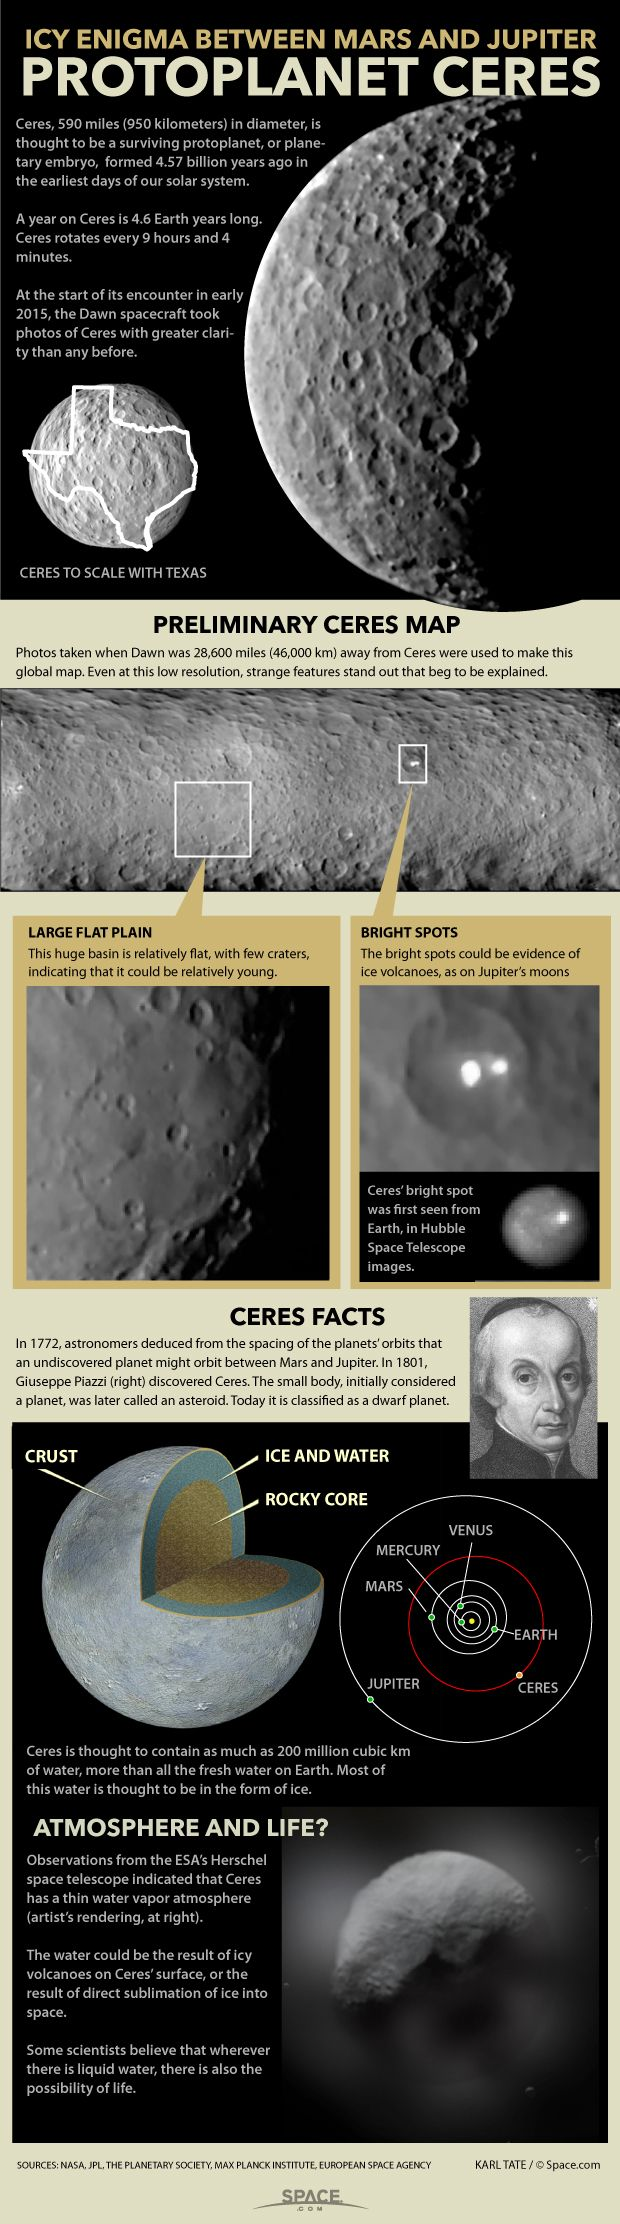 Dawn Probe Orbits Dwarf Planet Ceres: Full Coverage